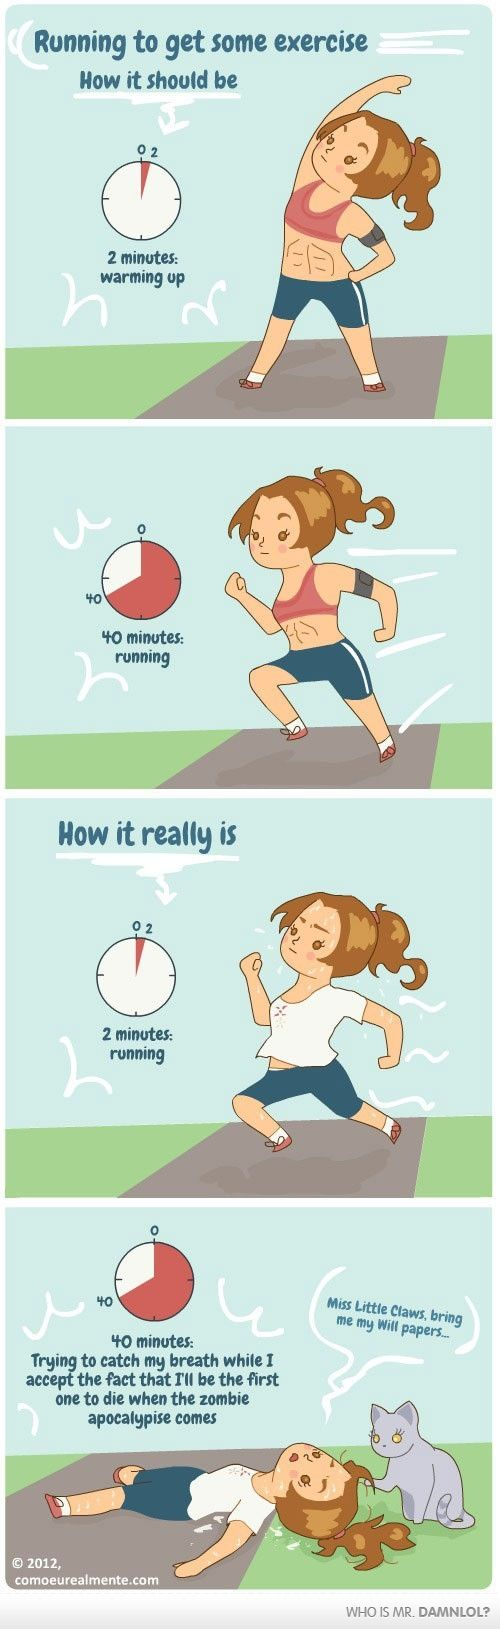 lol so true: Zombies Apocalypse, Real Life, Funny Pics, Funny Pictures, Running Humor, Fit Program, So True, Funny Photo, True Stories